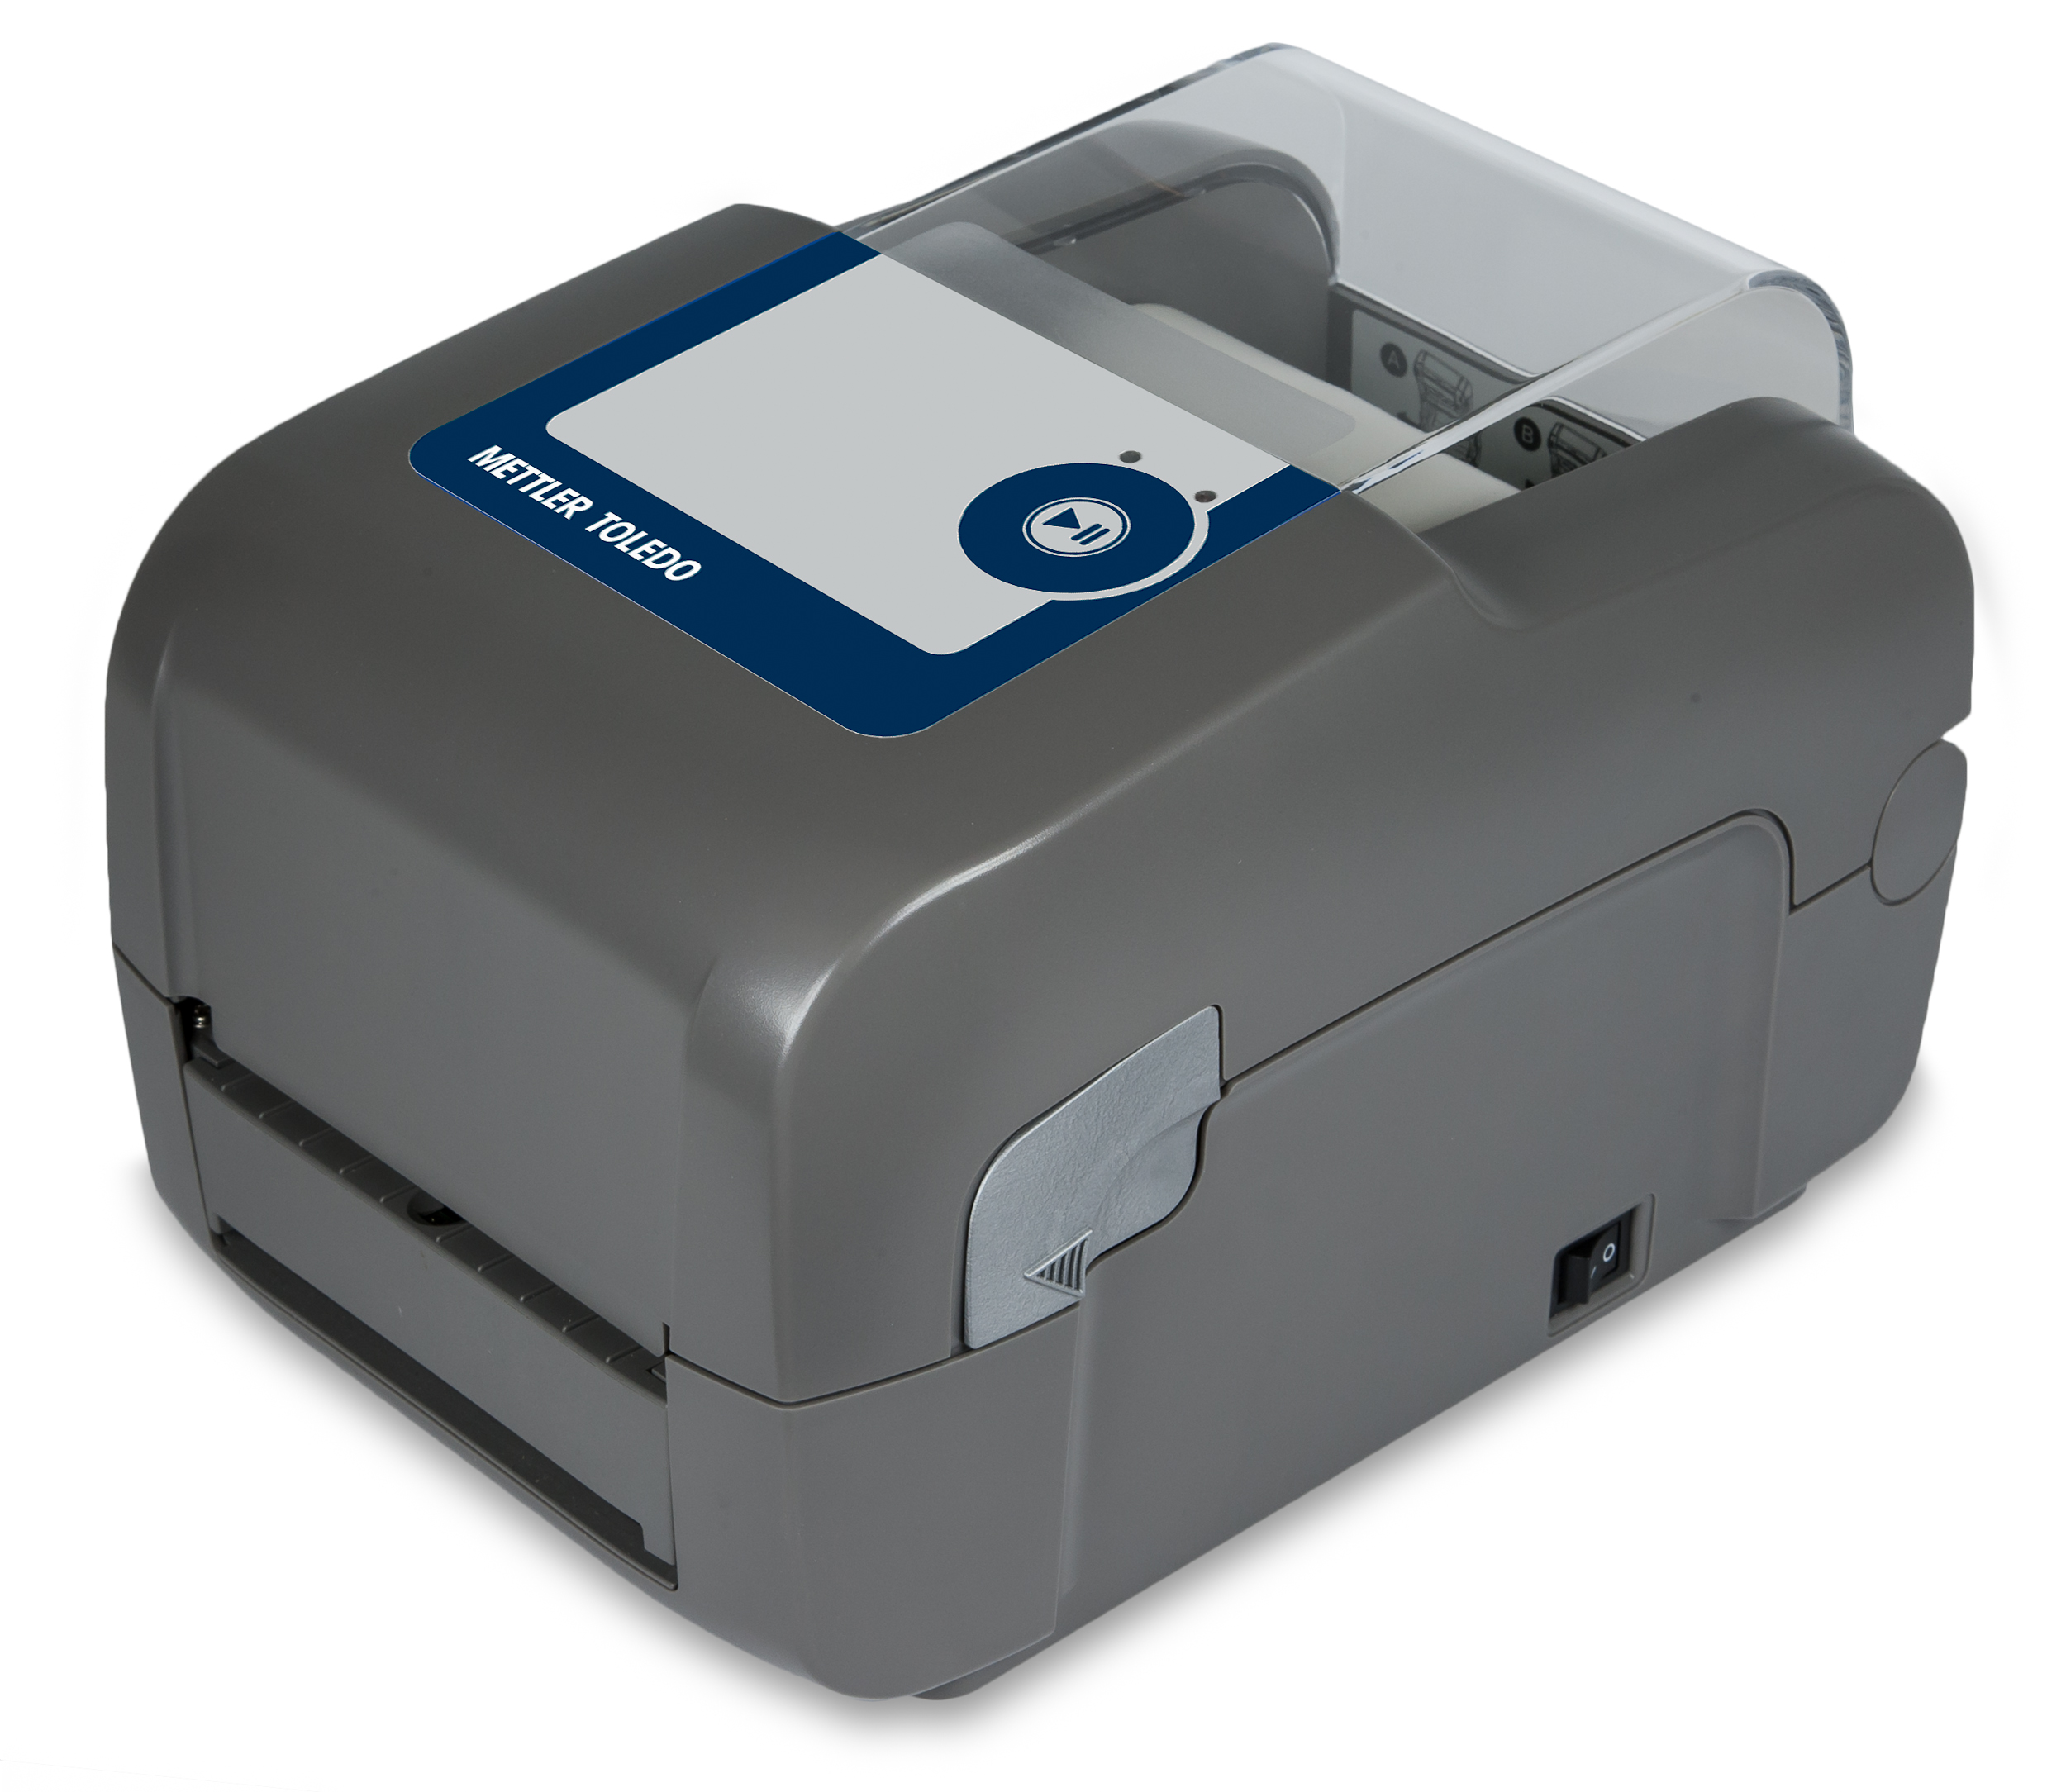 APR510 Label Printer